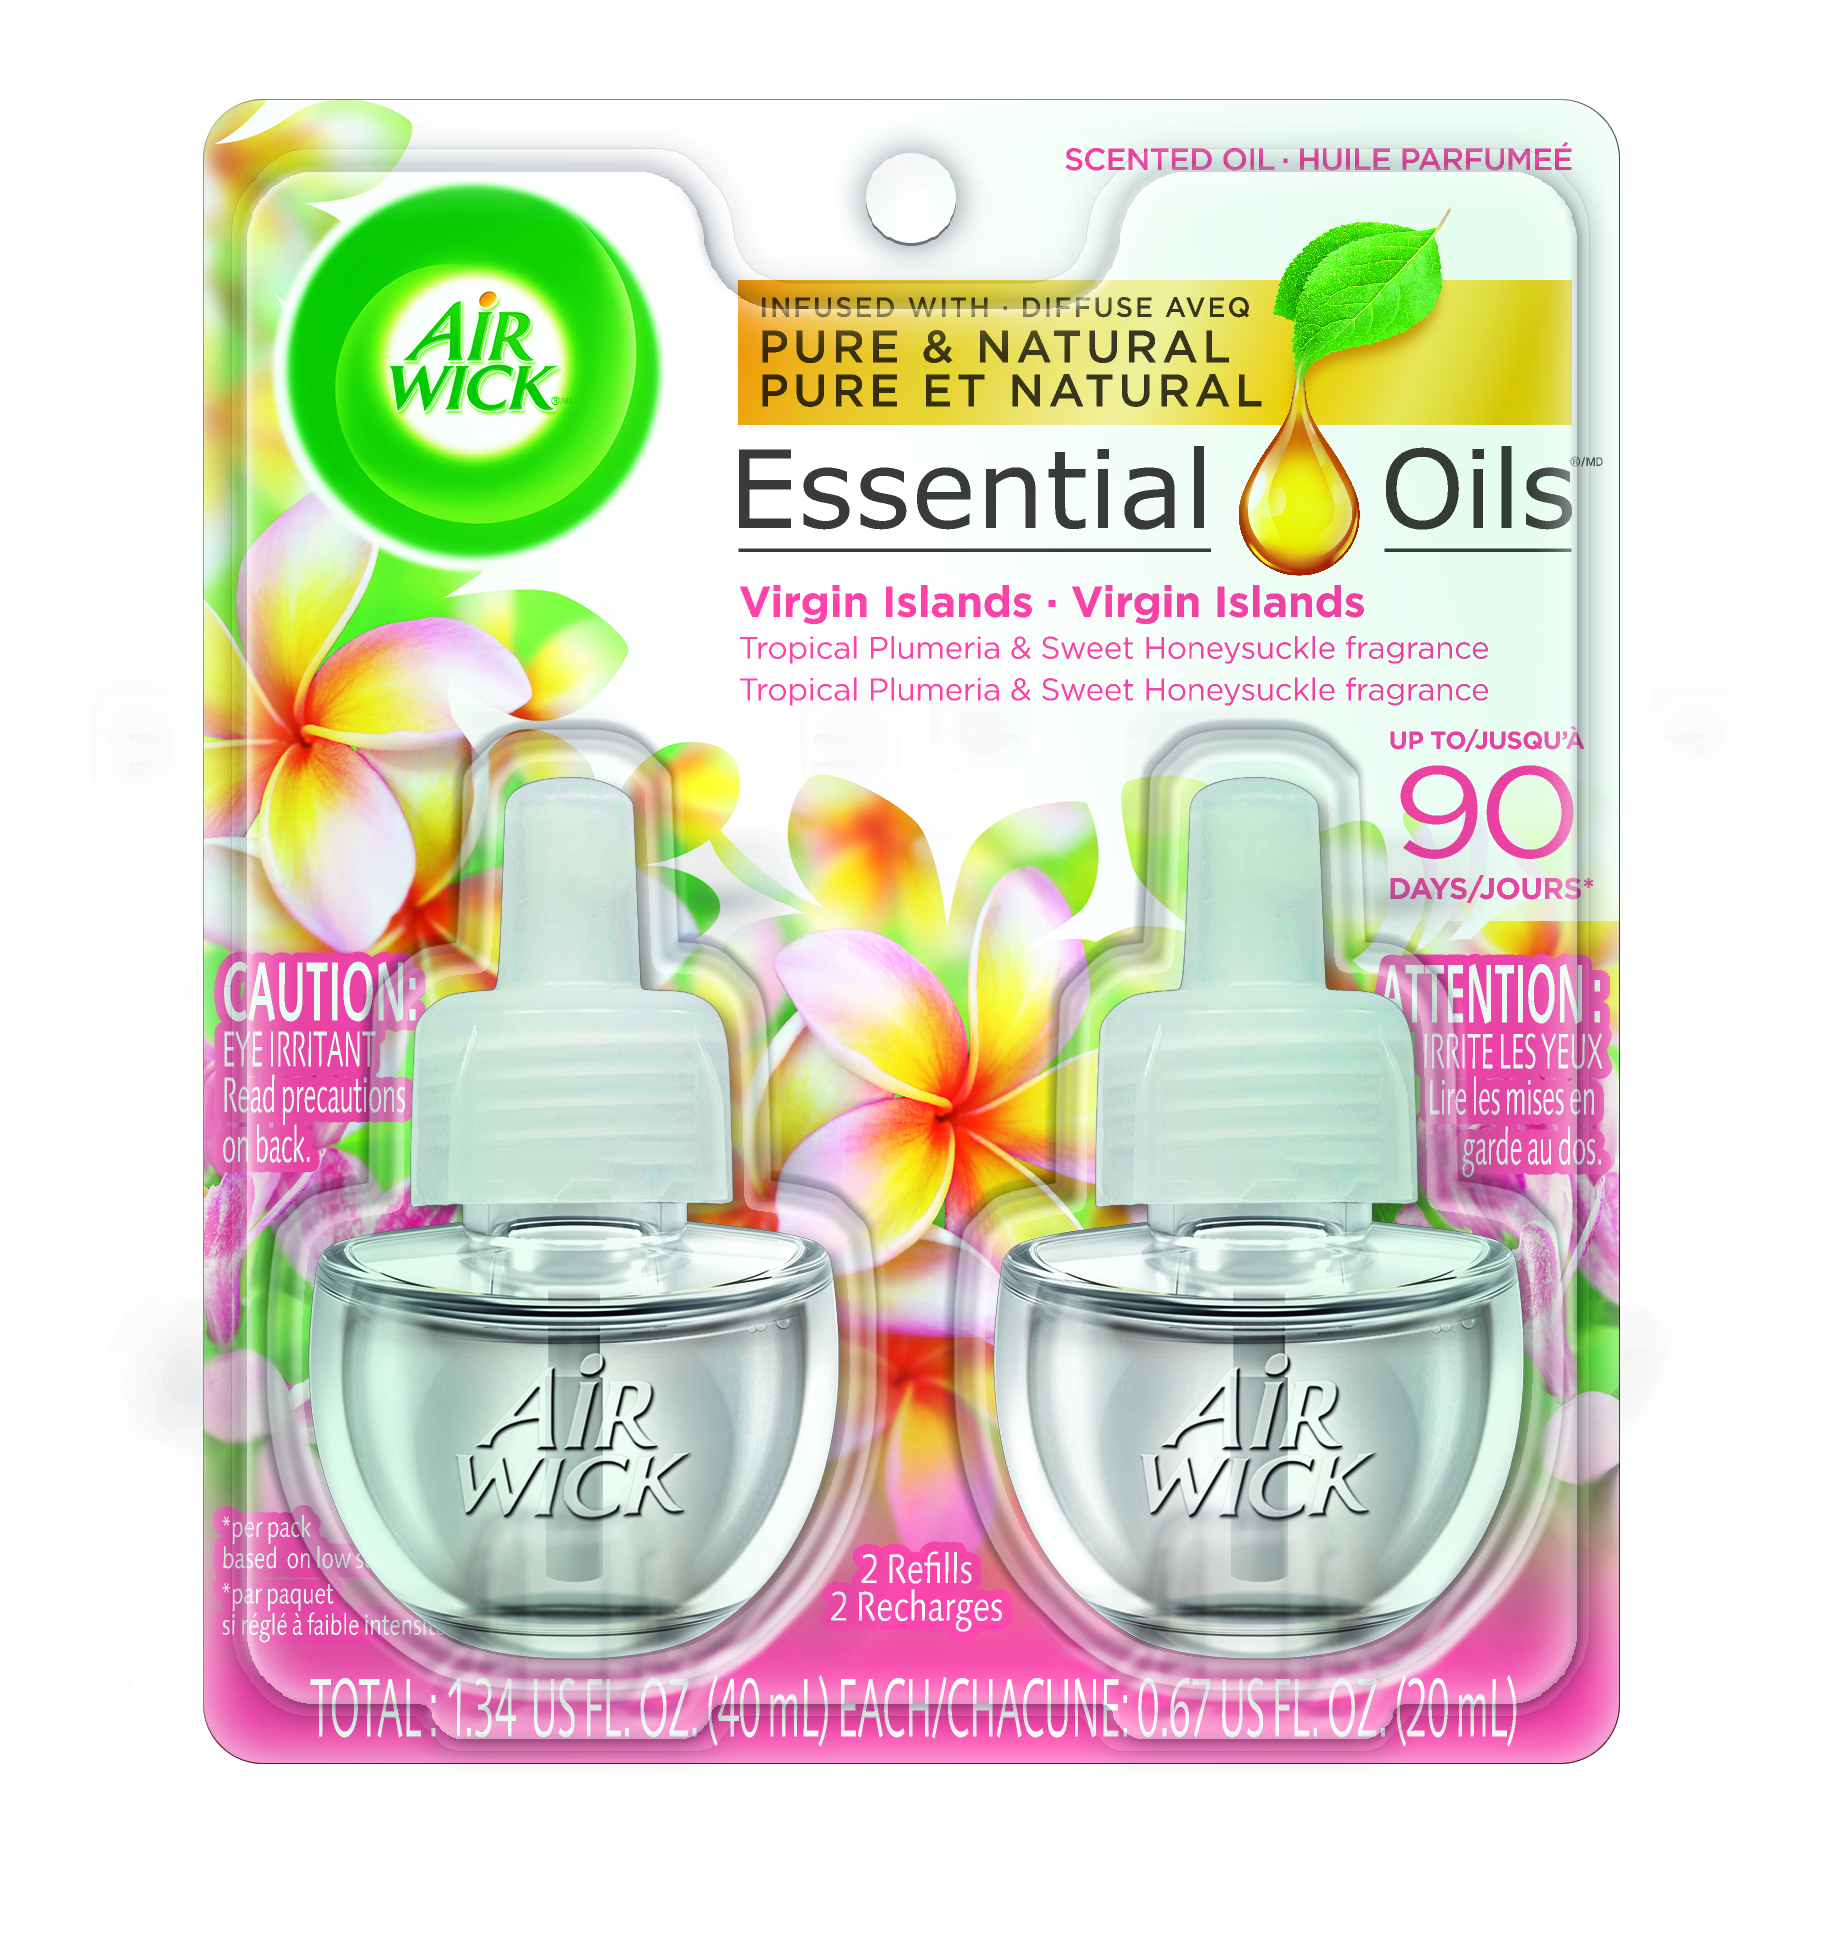 AIR WICK® Scented Oil - Virgin Islands Tropical Plumeria & Sweet Honeysuckle